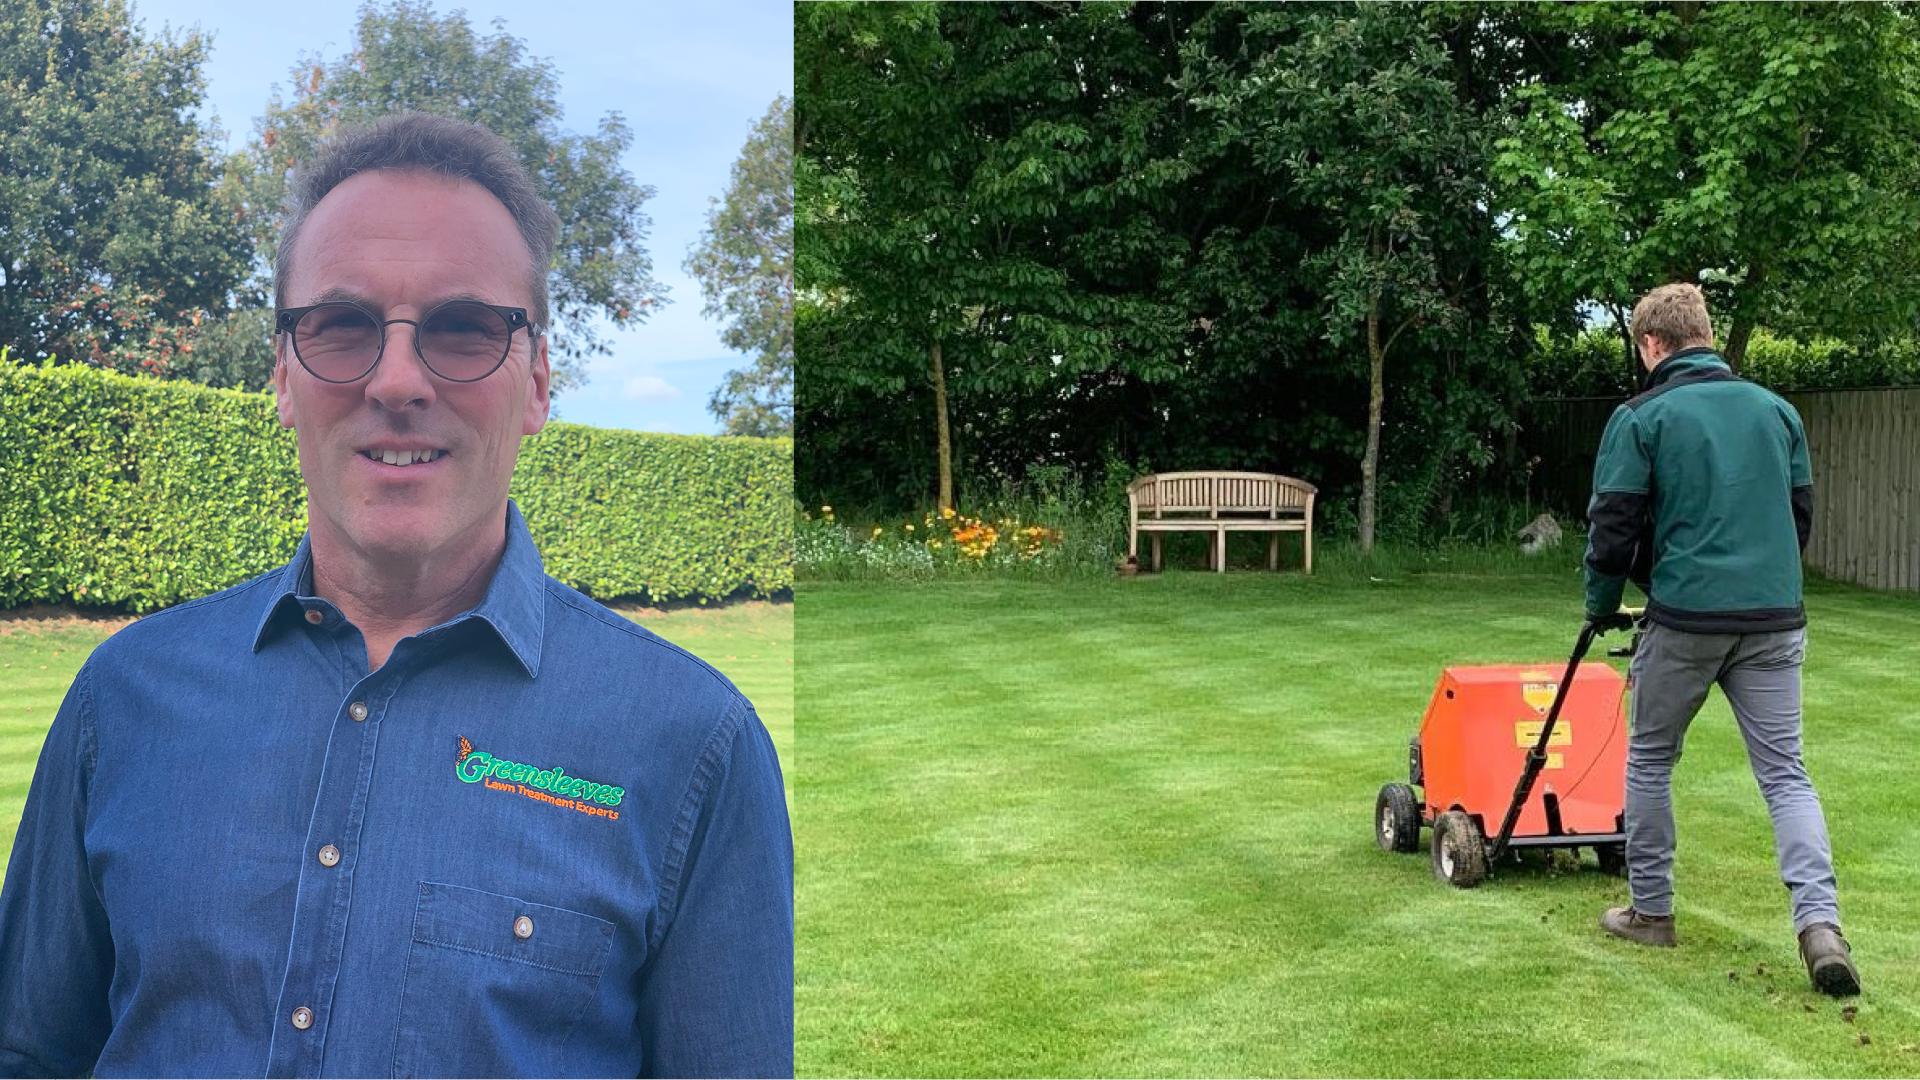 Franchisee turned franchisor gives his top tips after nearly two decades in franchising